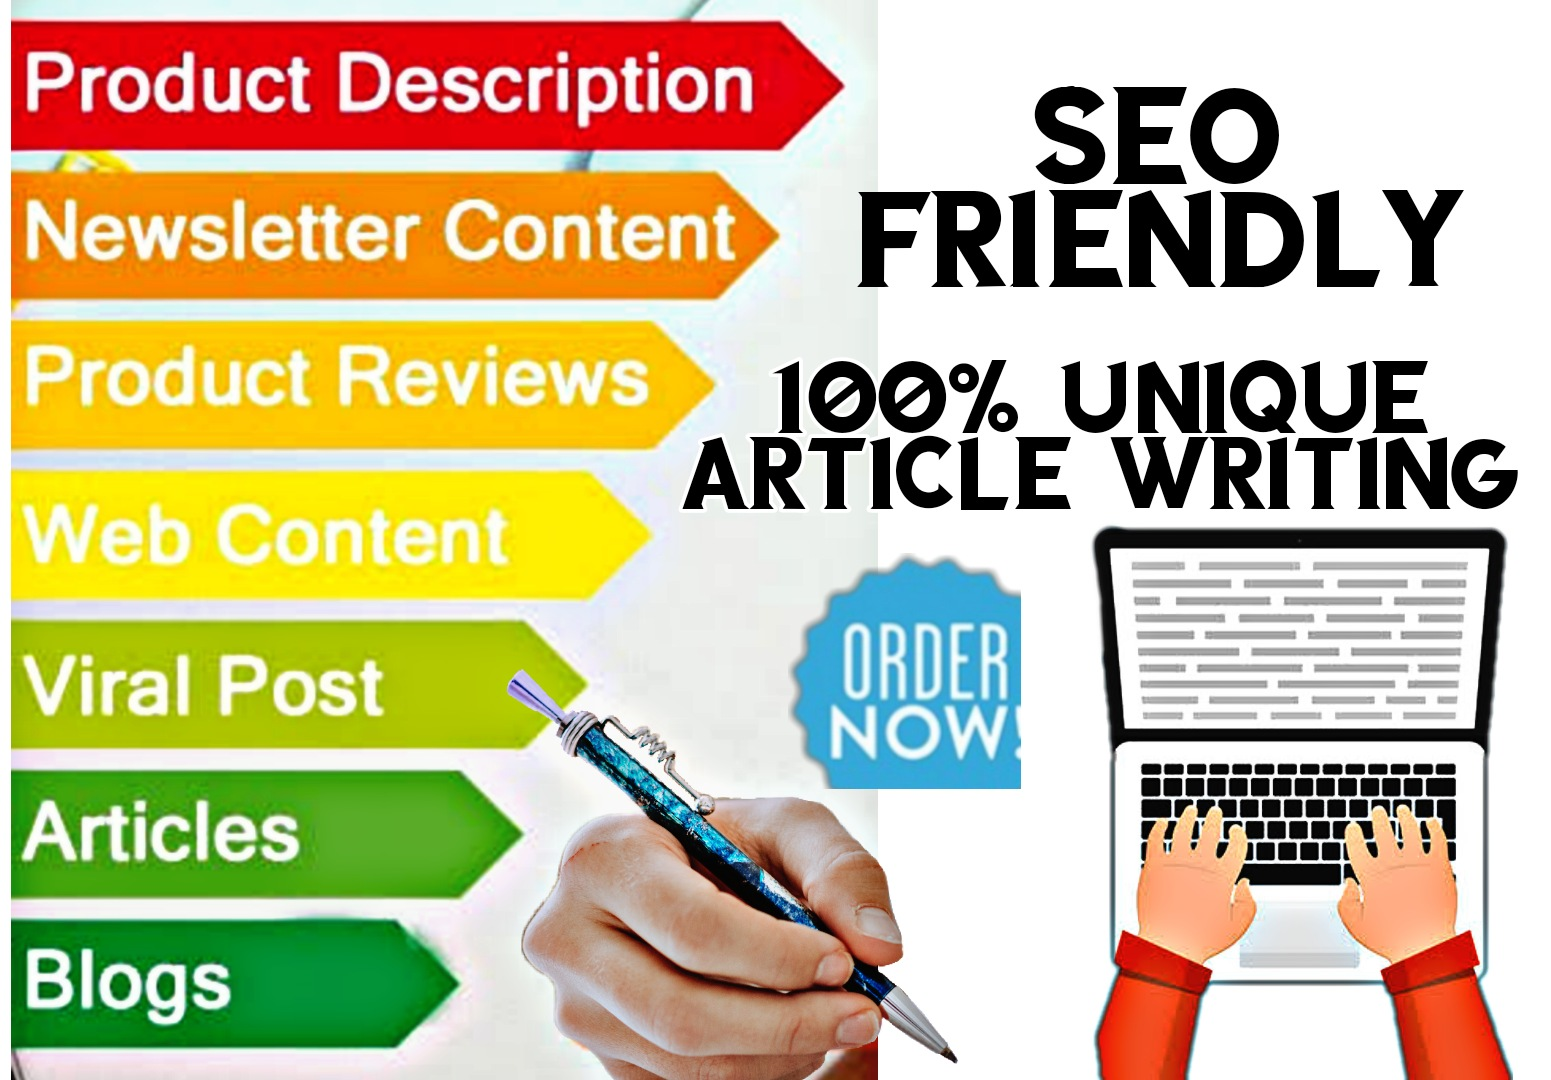 Article writing 2 X 1000 Words High Quality Unique SEO friendly Content/Article For your nishe